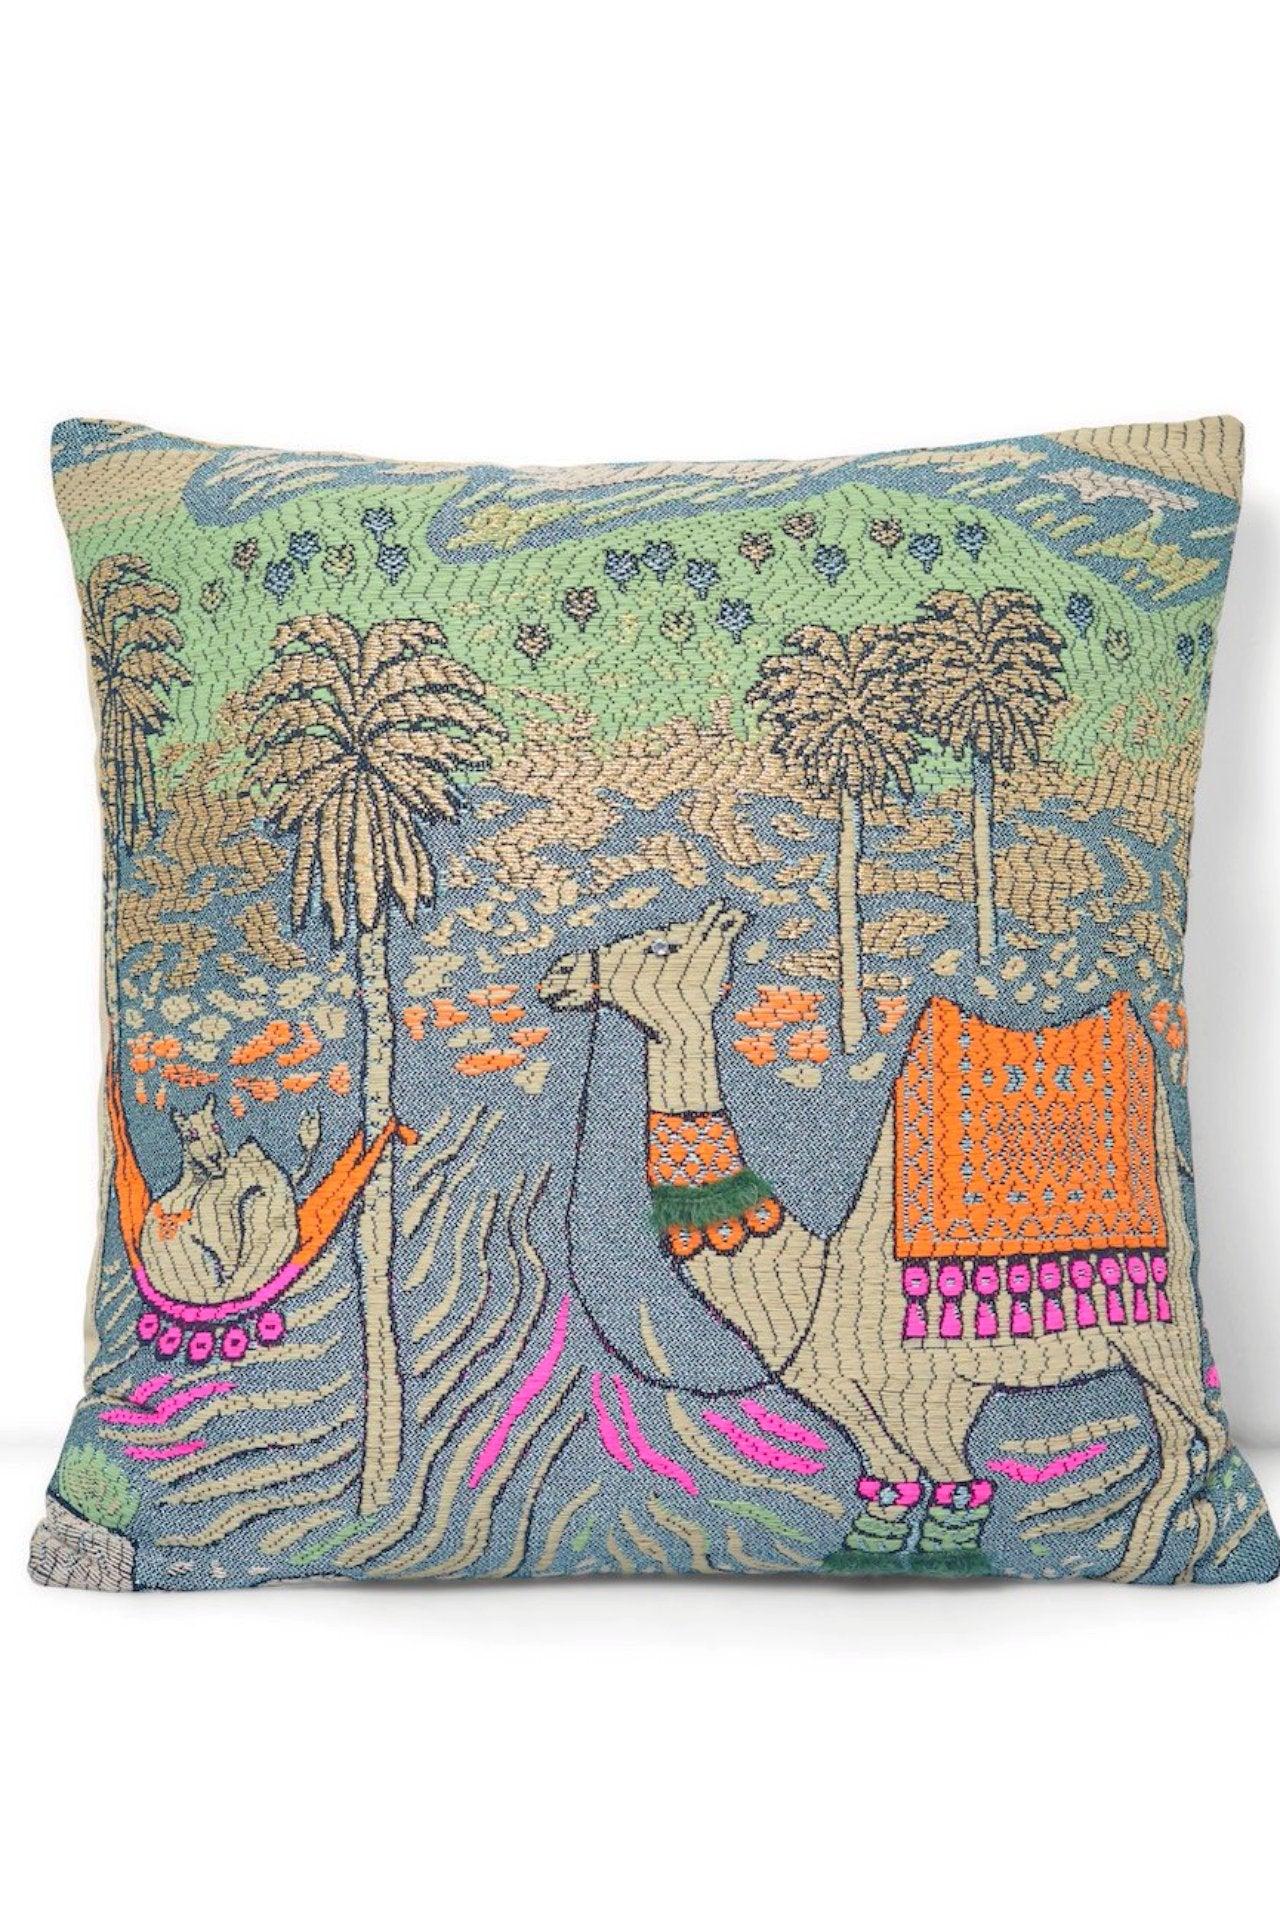 Jacquard Camel/Egypt Square Pillow